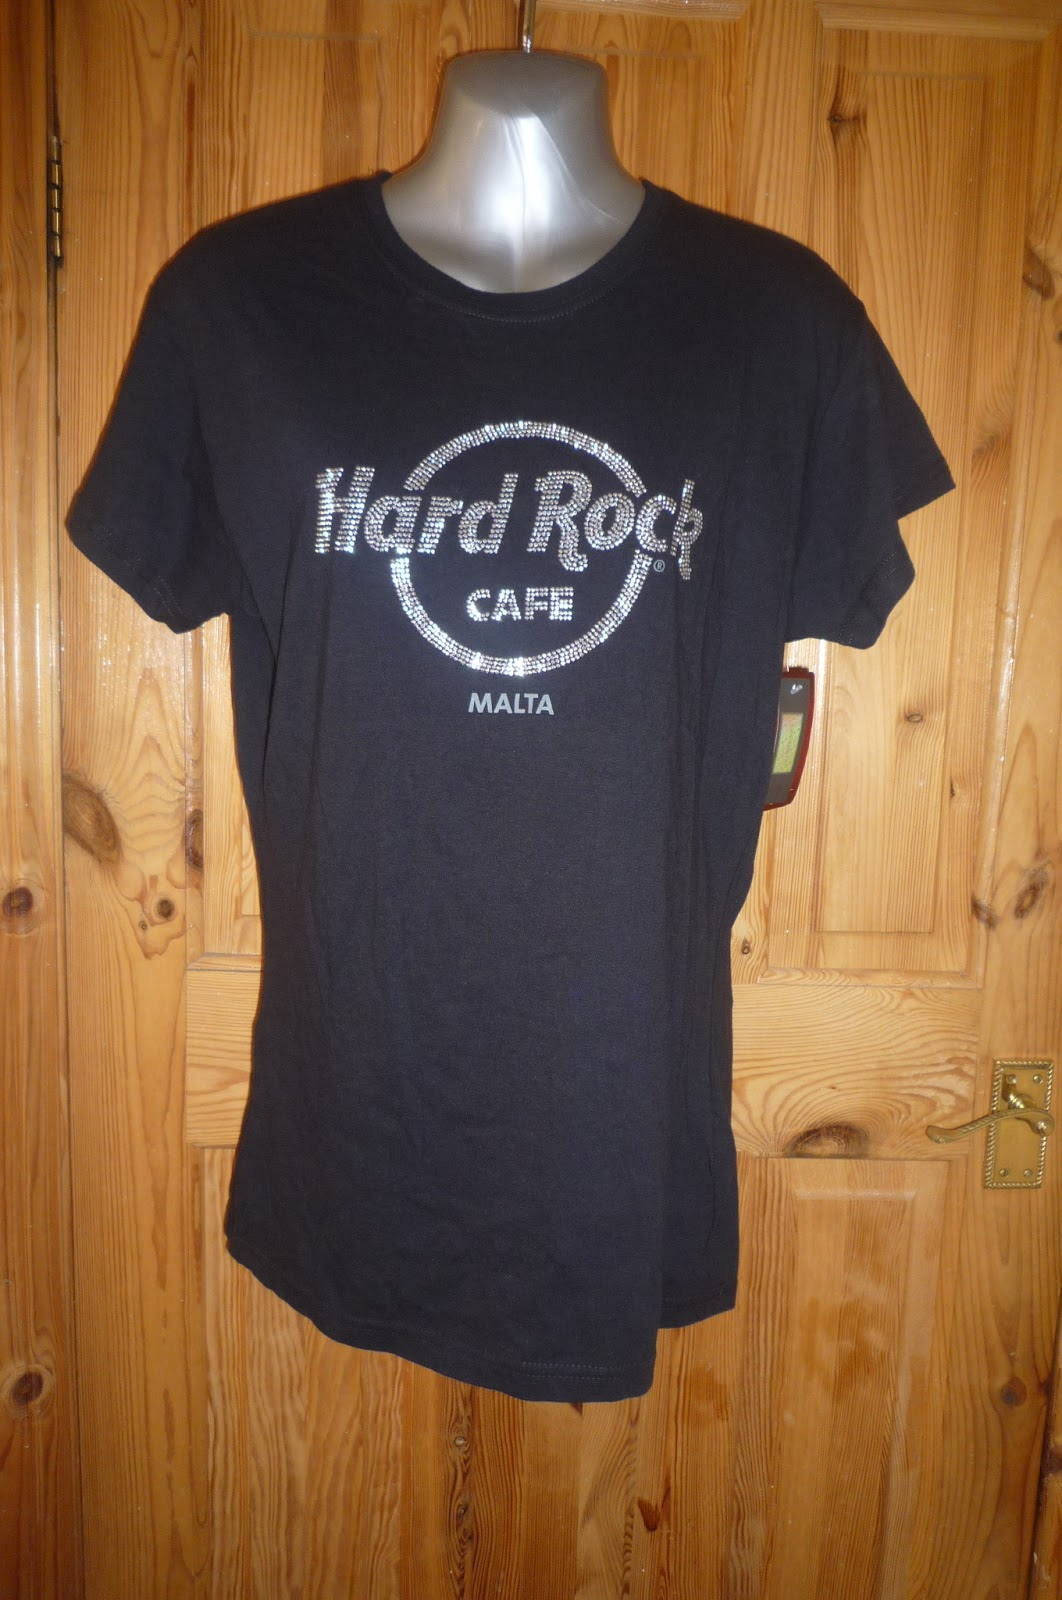 Busybeeroom Welcomes You Hard Rock Cafe Quot Malta Quot T Shirt